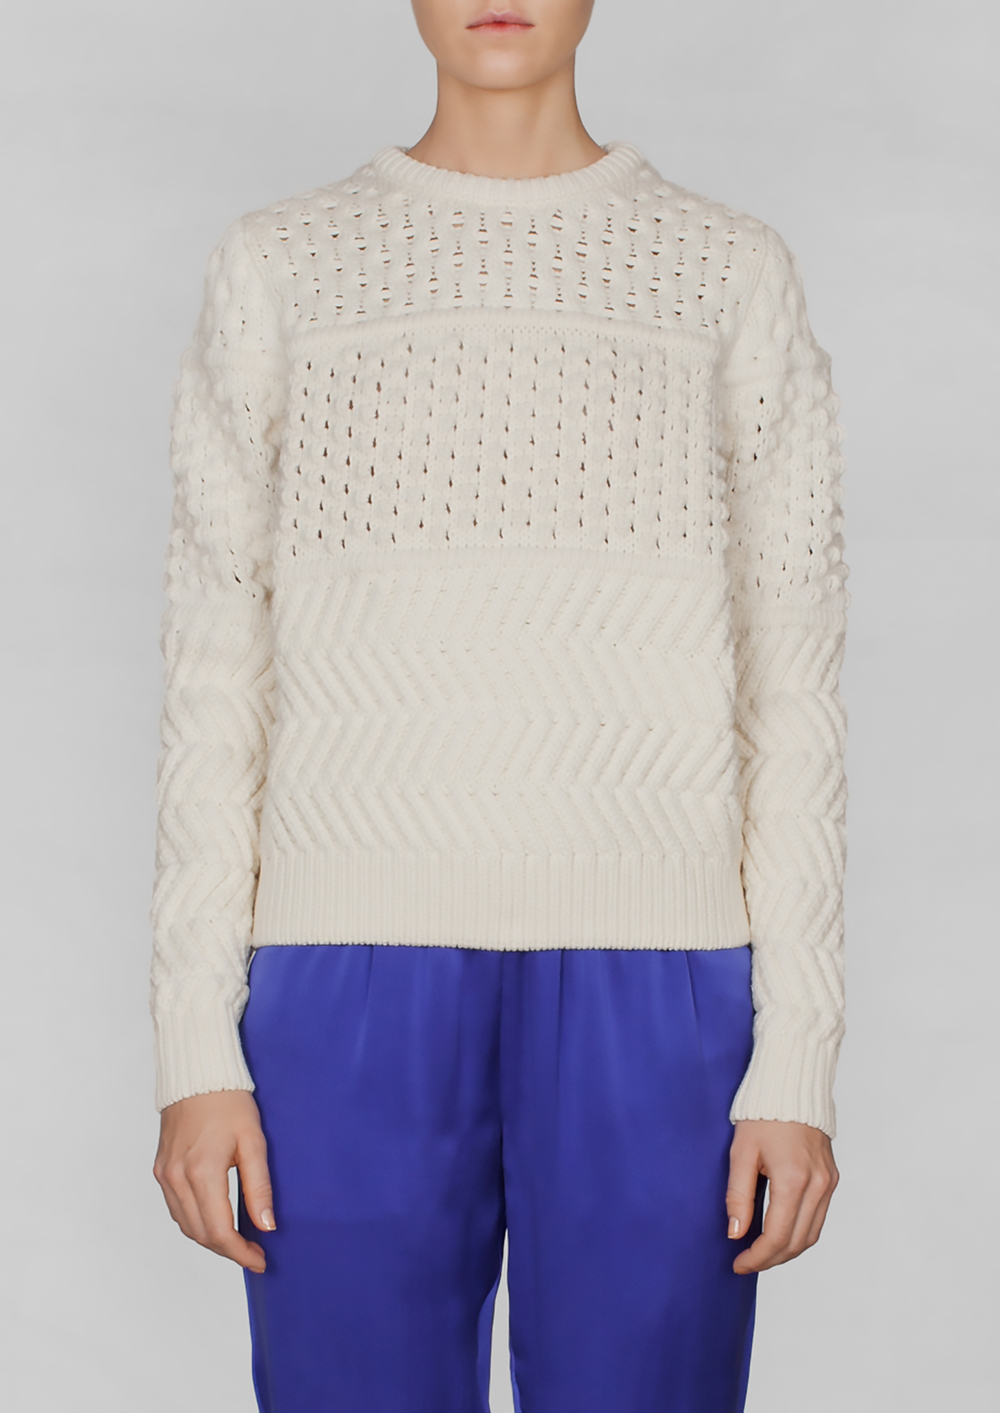 &otherstories mixed knit sweater 1500.jpg